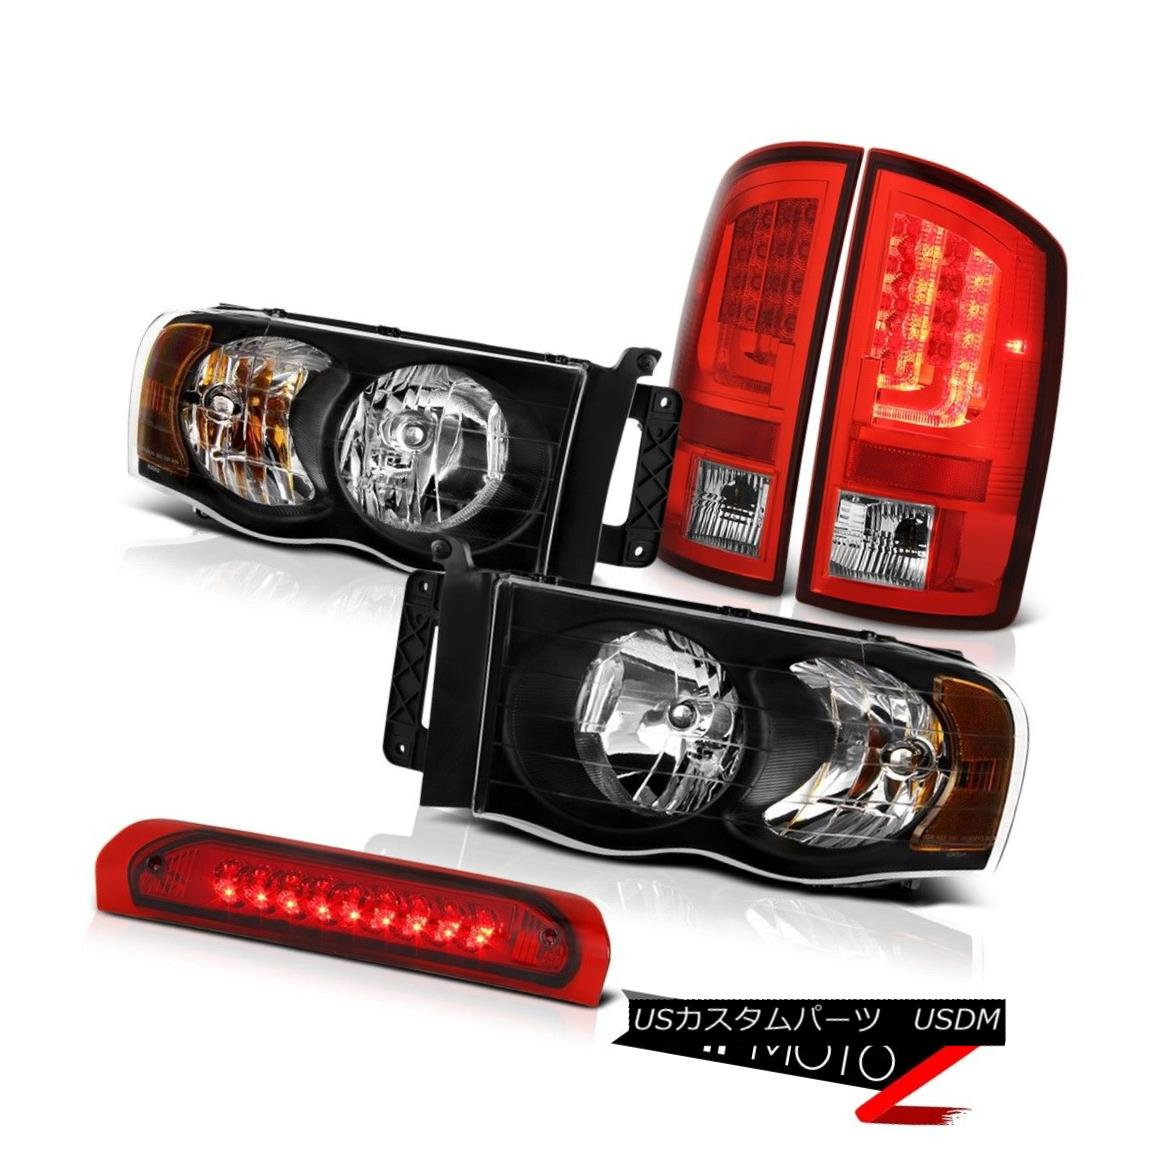 テールライト 2003-2005 Dodge Ram 2500 ST Taillights Headlamps High STop Light Tron STyle LED 2003-2005 Dodge Ram 2500 ST灯台ヘッドランプHigh STop Light Tron STyle LED